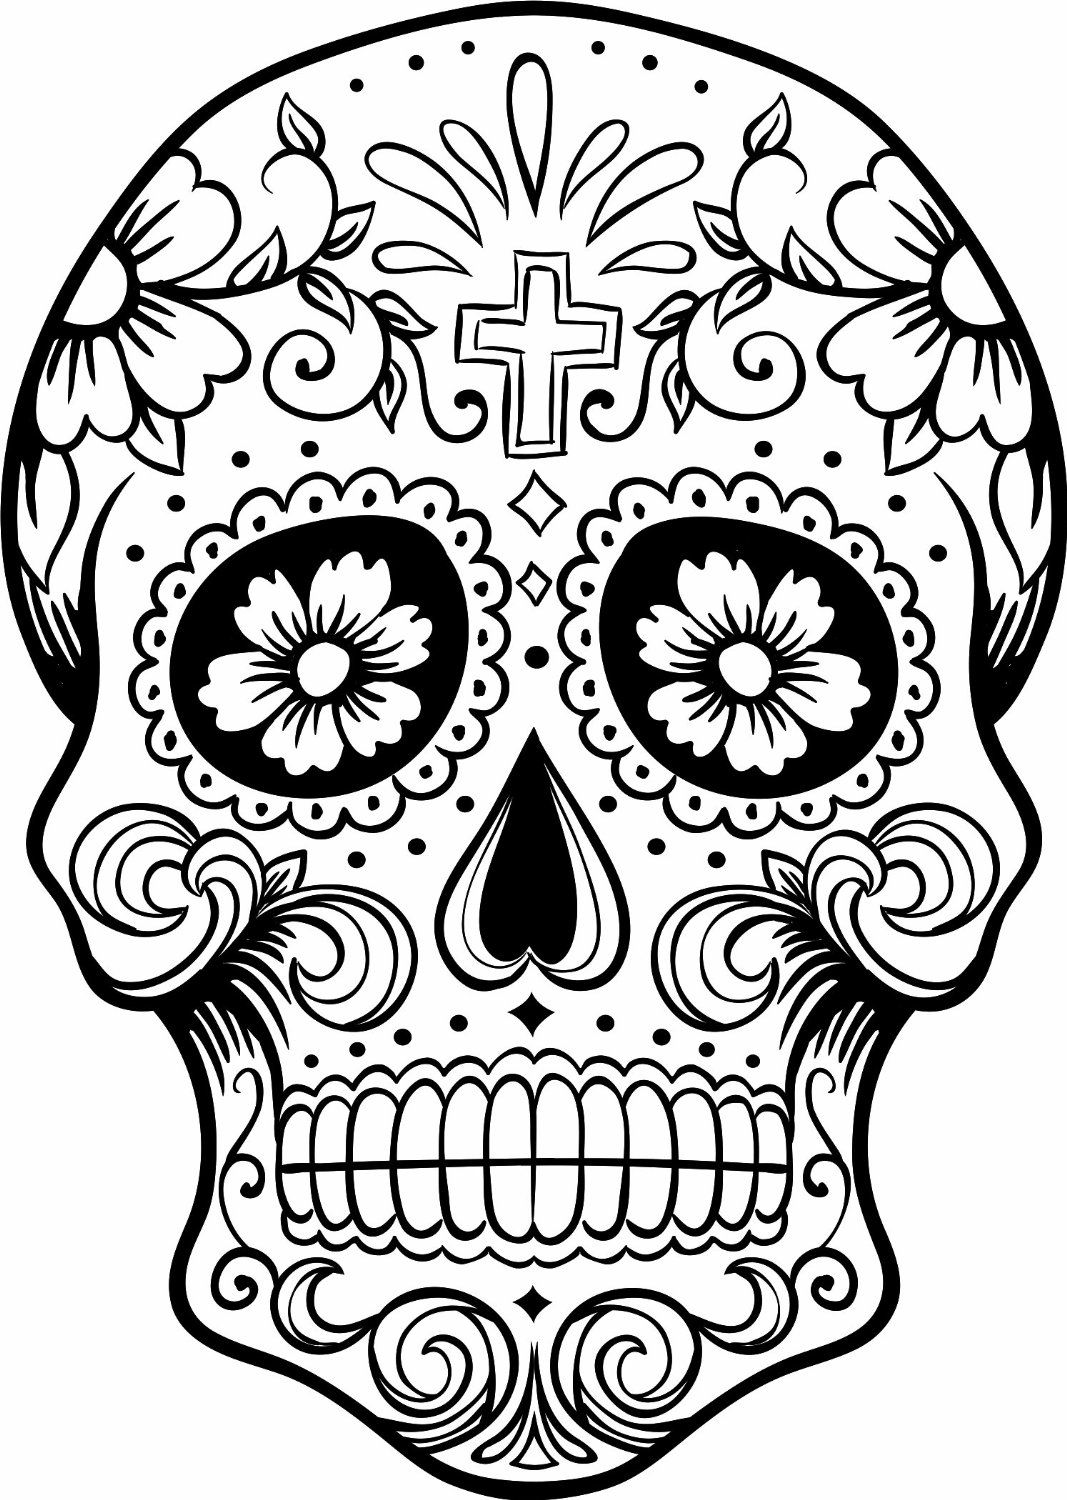 - Day Of The Dead Skull Coloring Pages Skull Coloring Pages, Skull